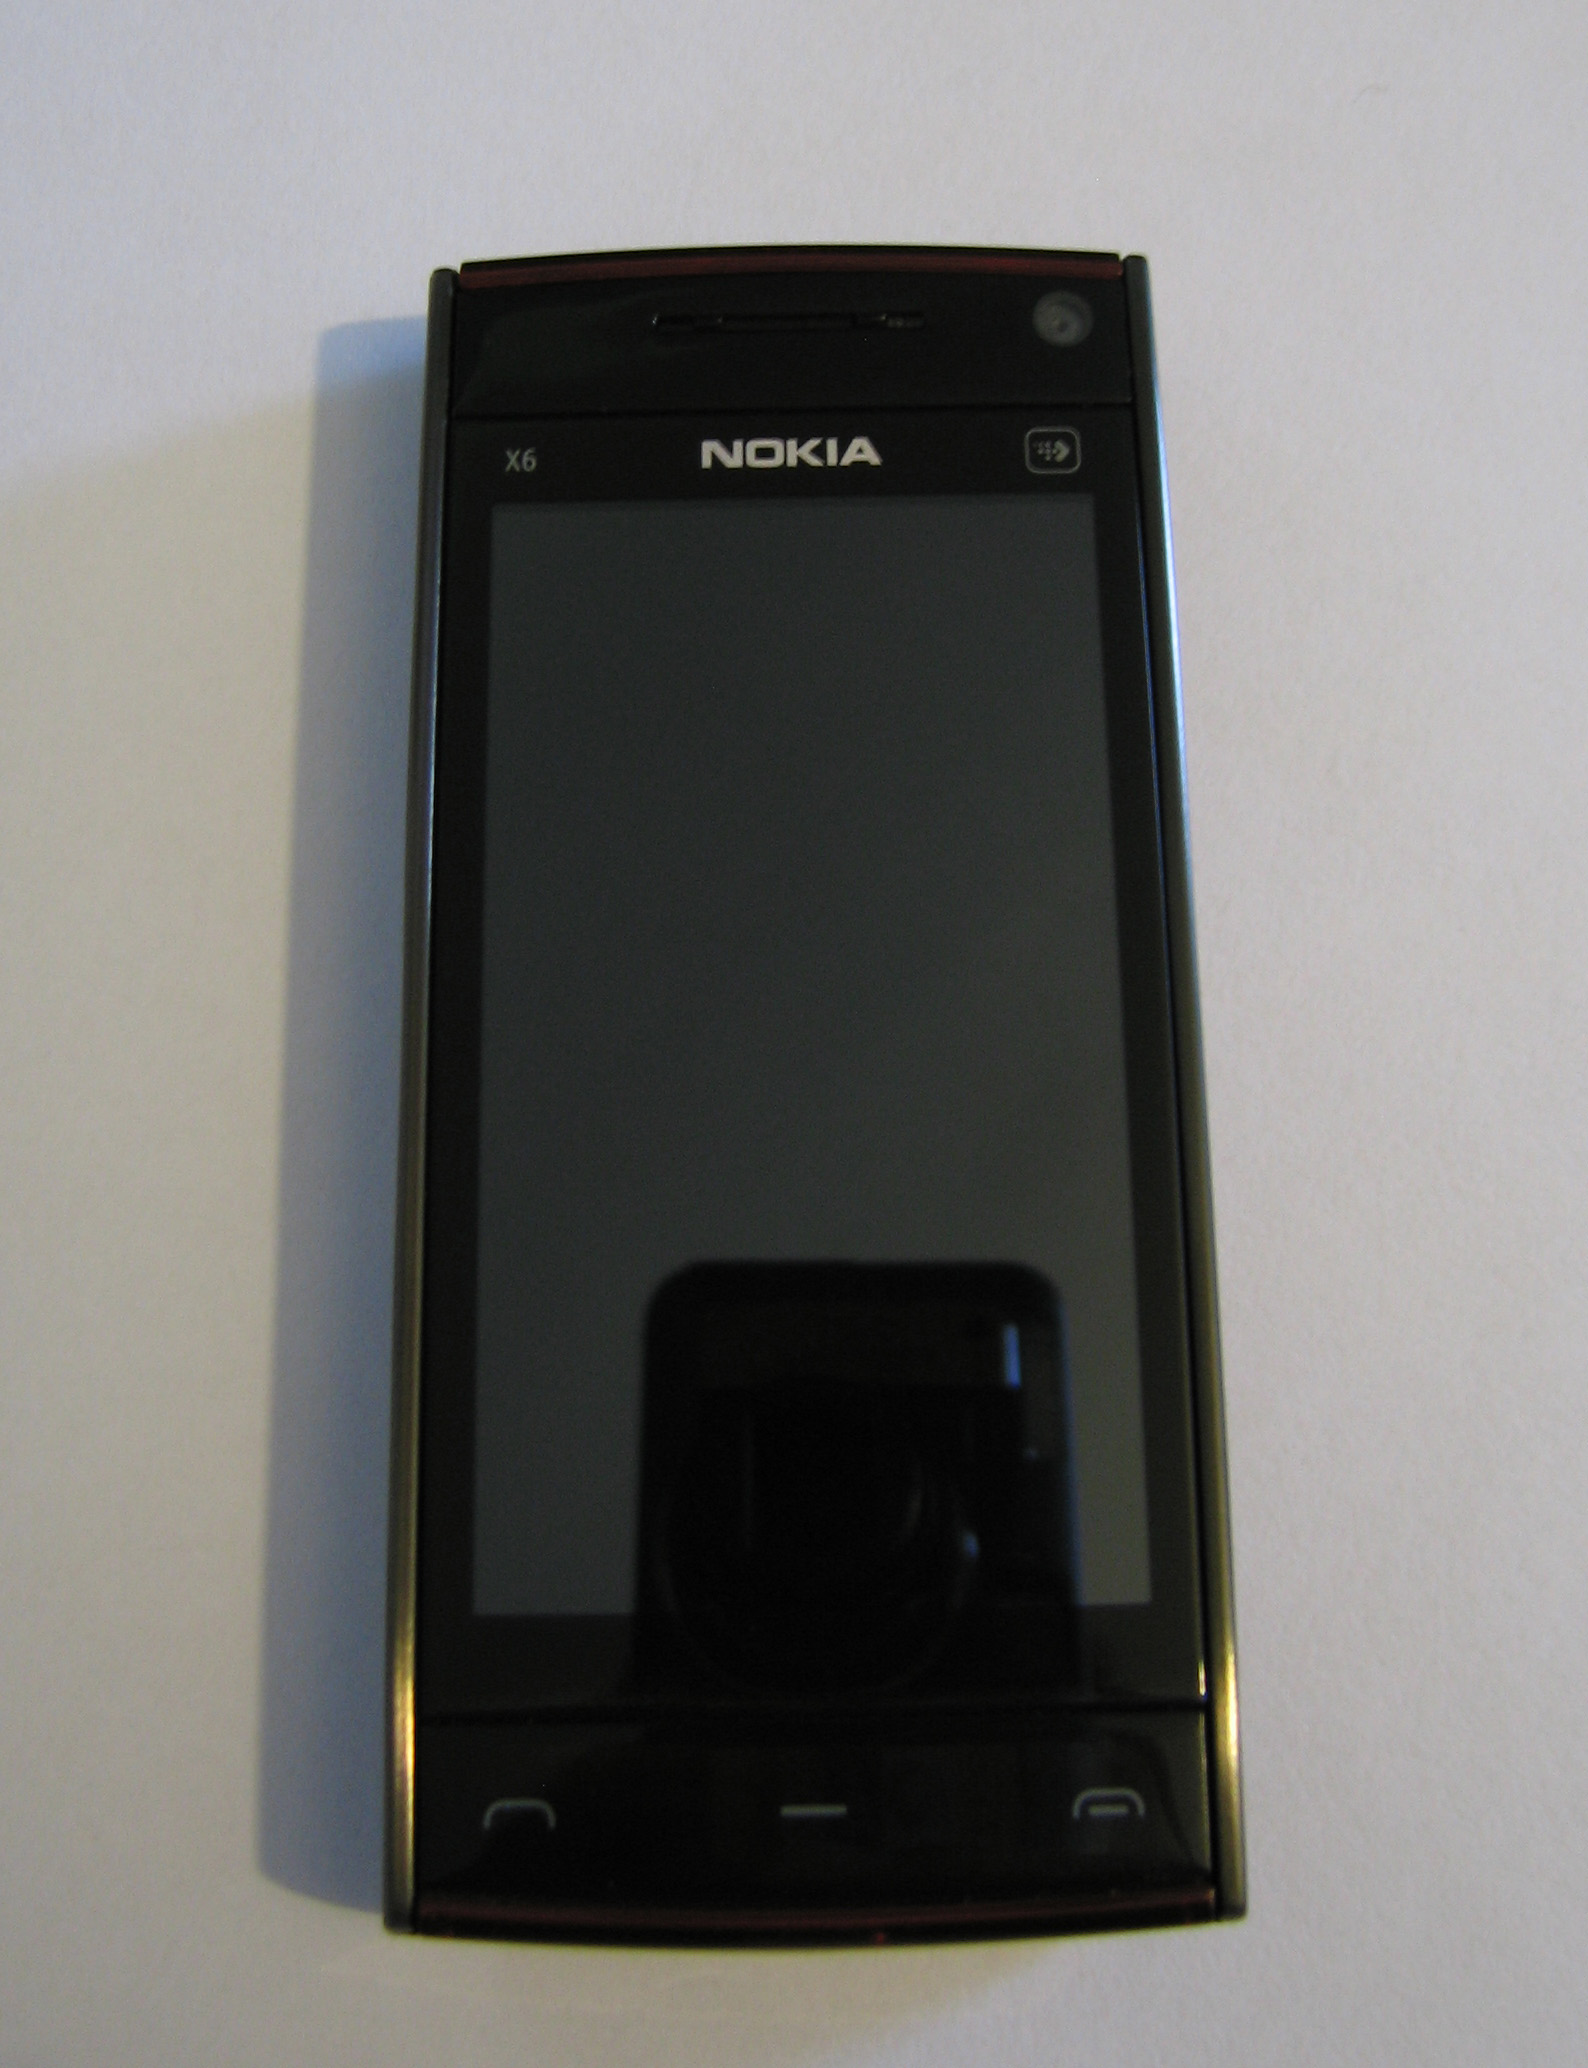 Nokia X6 – Front Powered Off